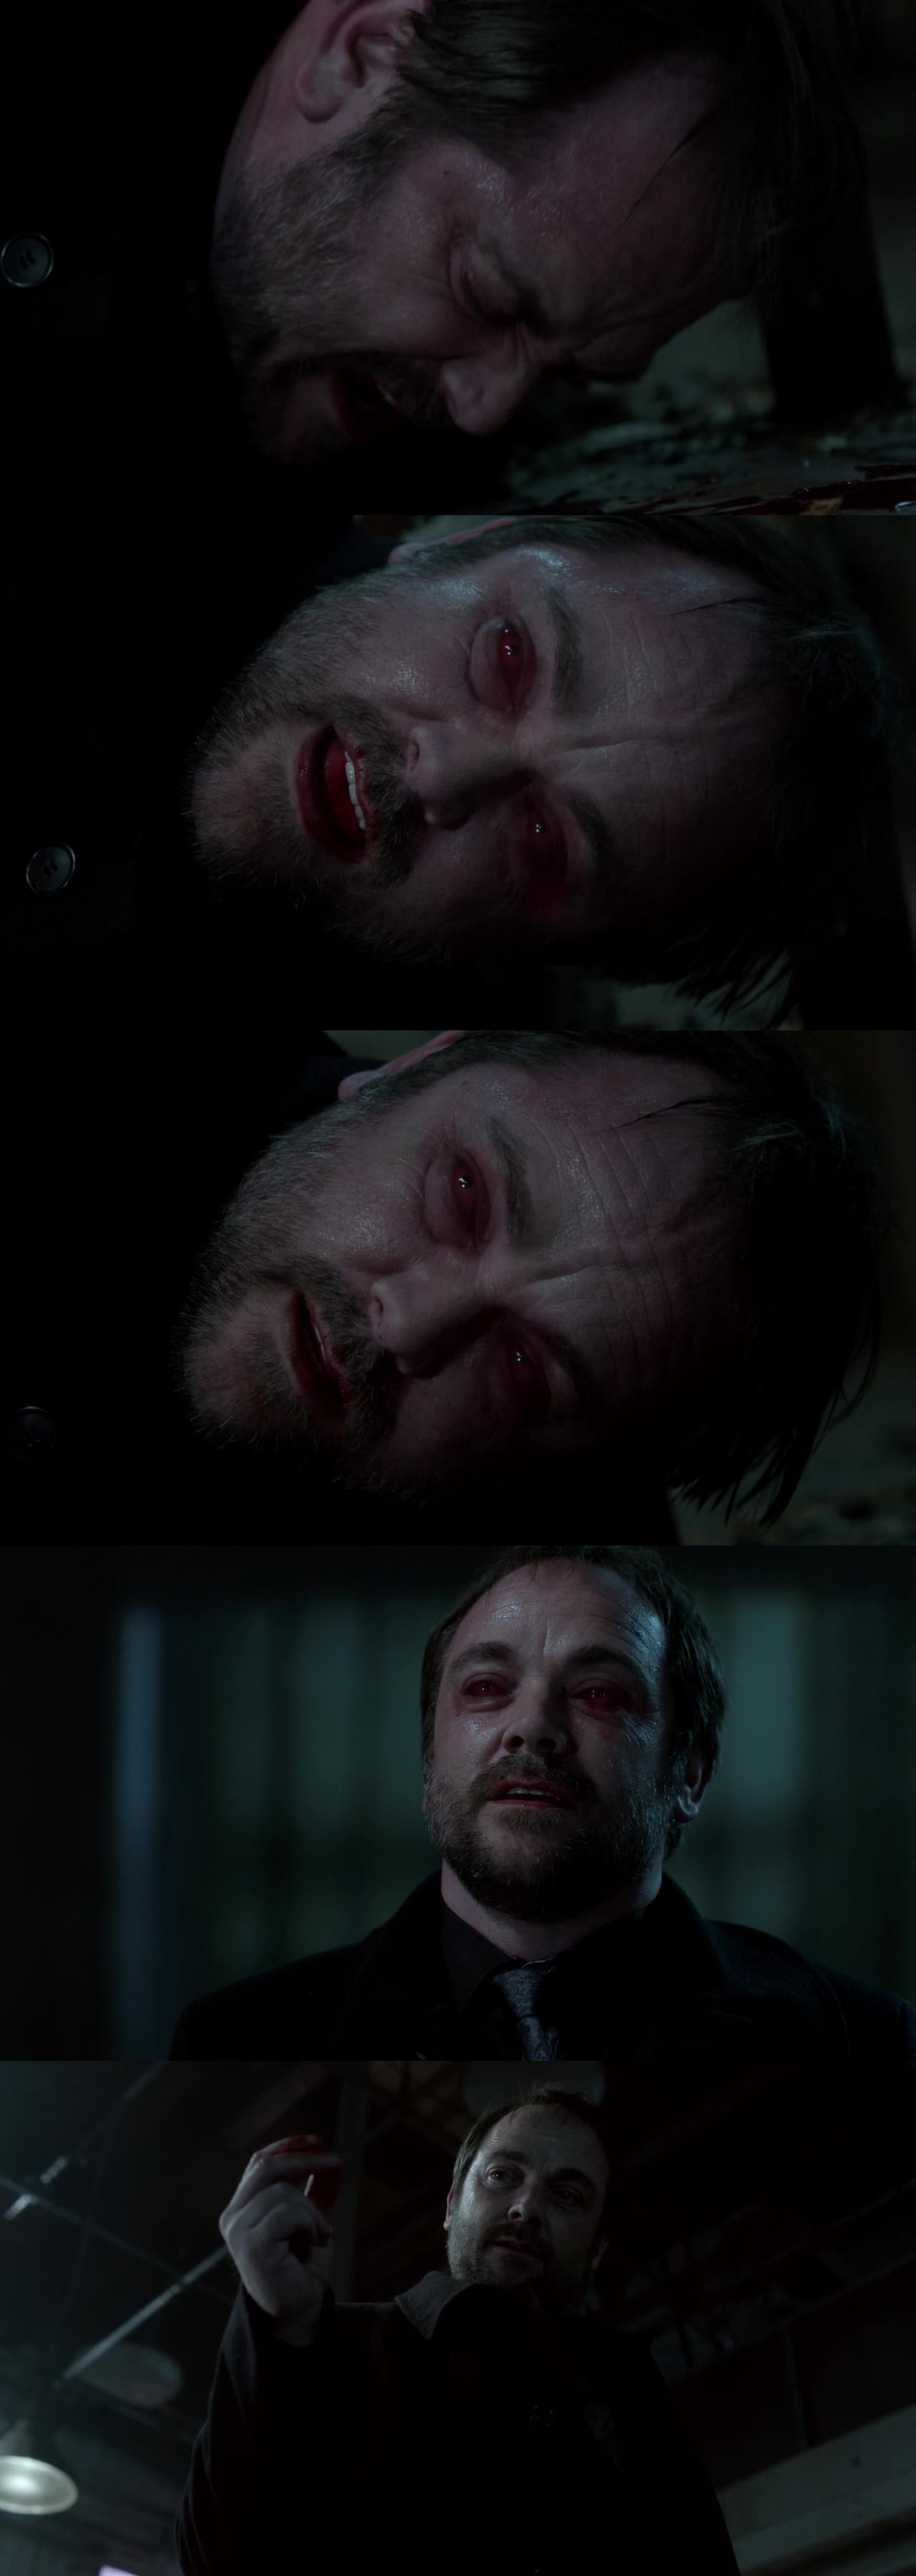 the bloody King of Hell is finally back!!!! so happy! I missed badass!Crowley